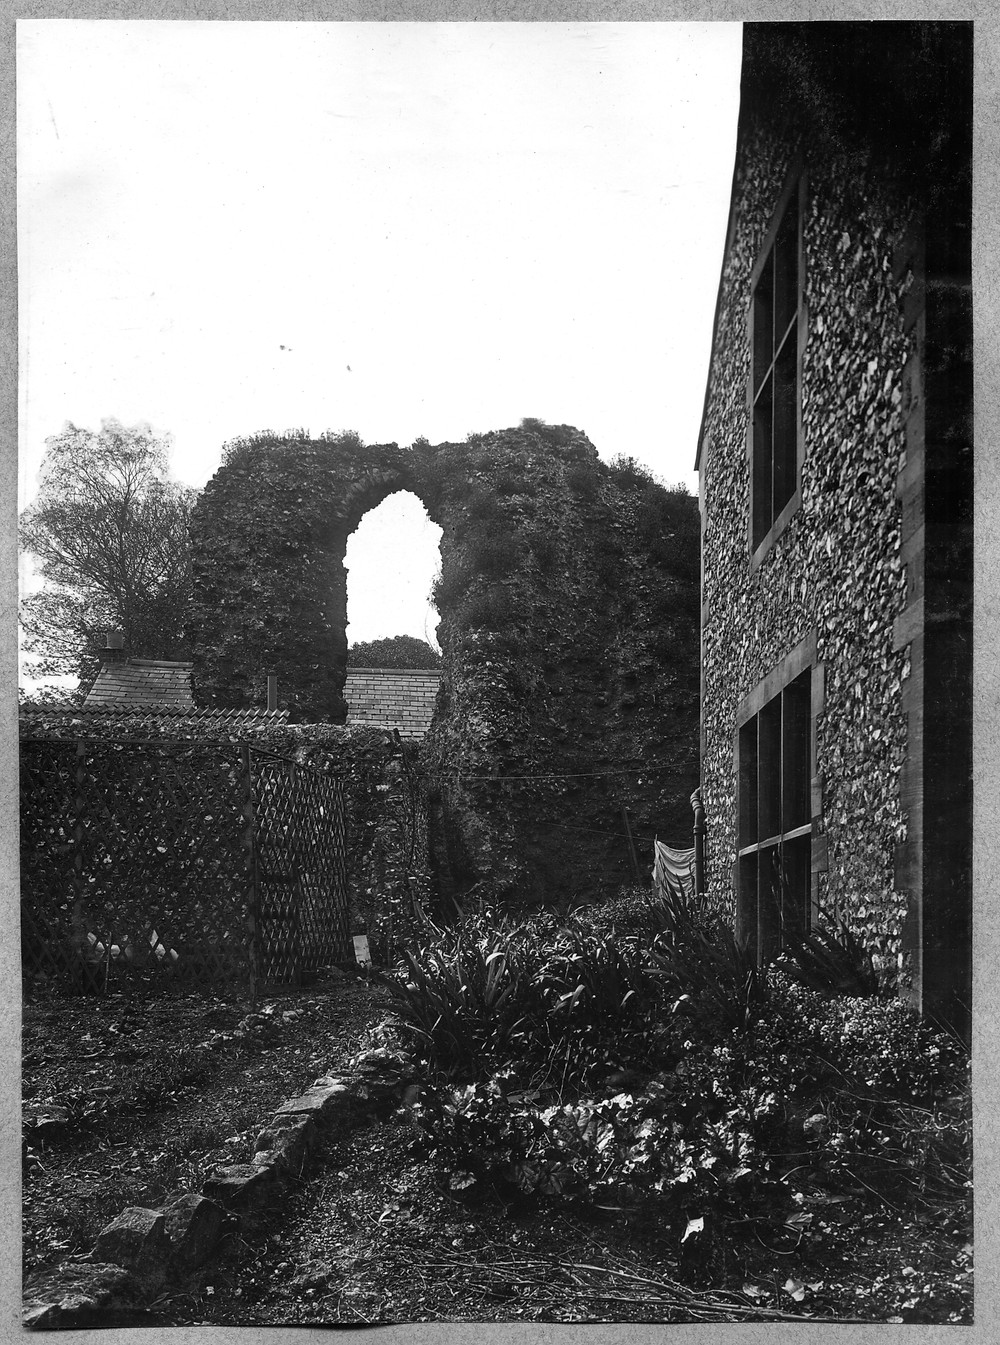 Early photo of St James' garden